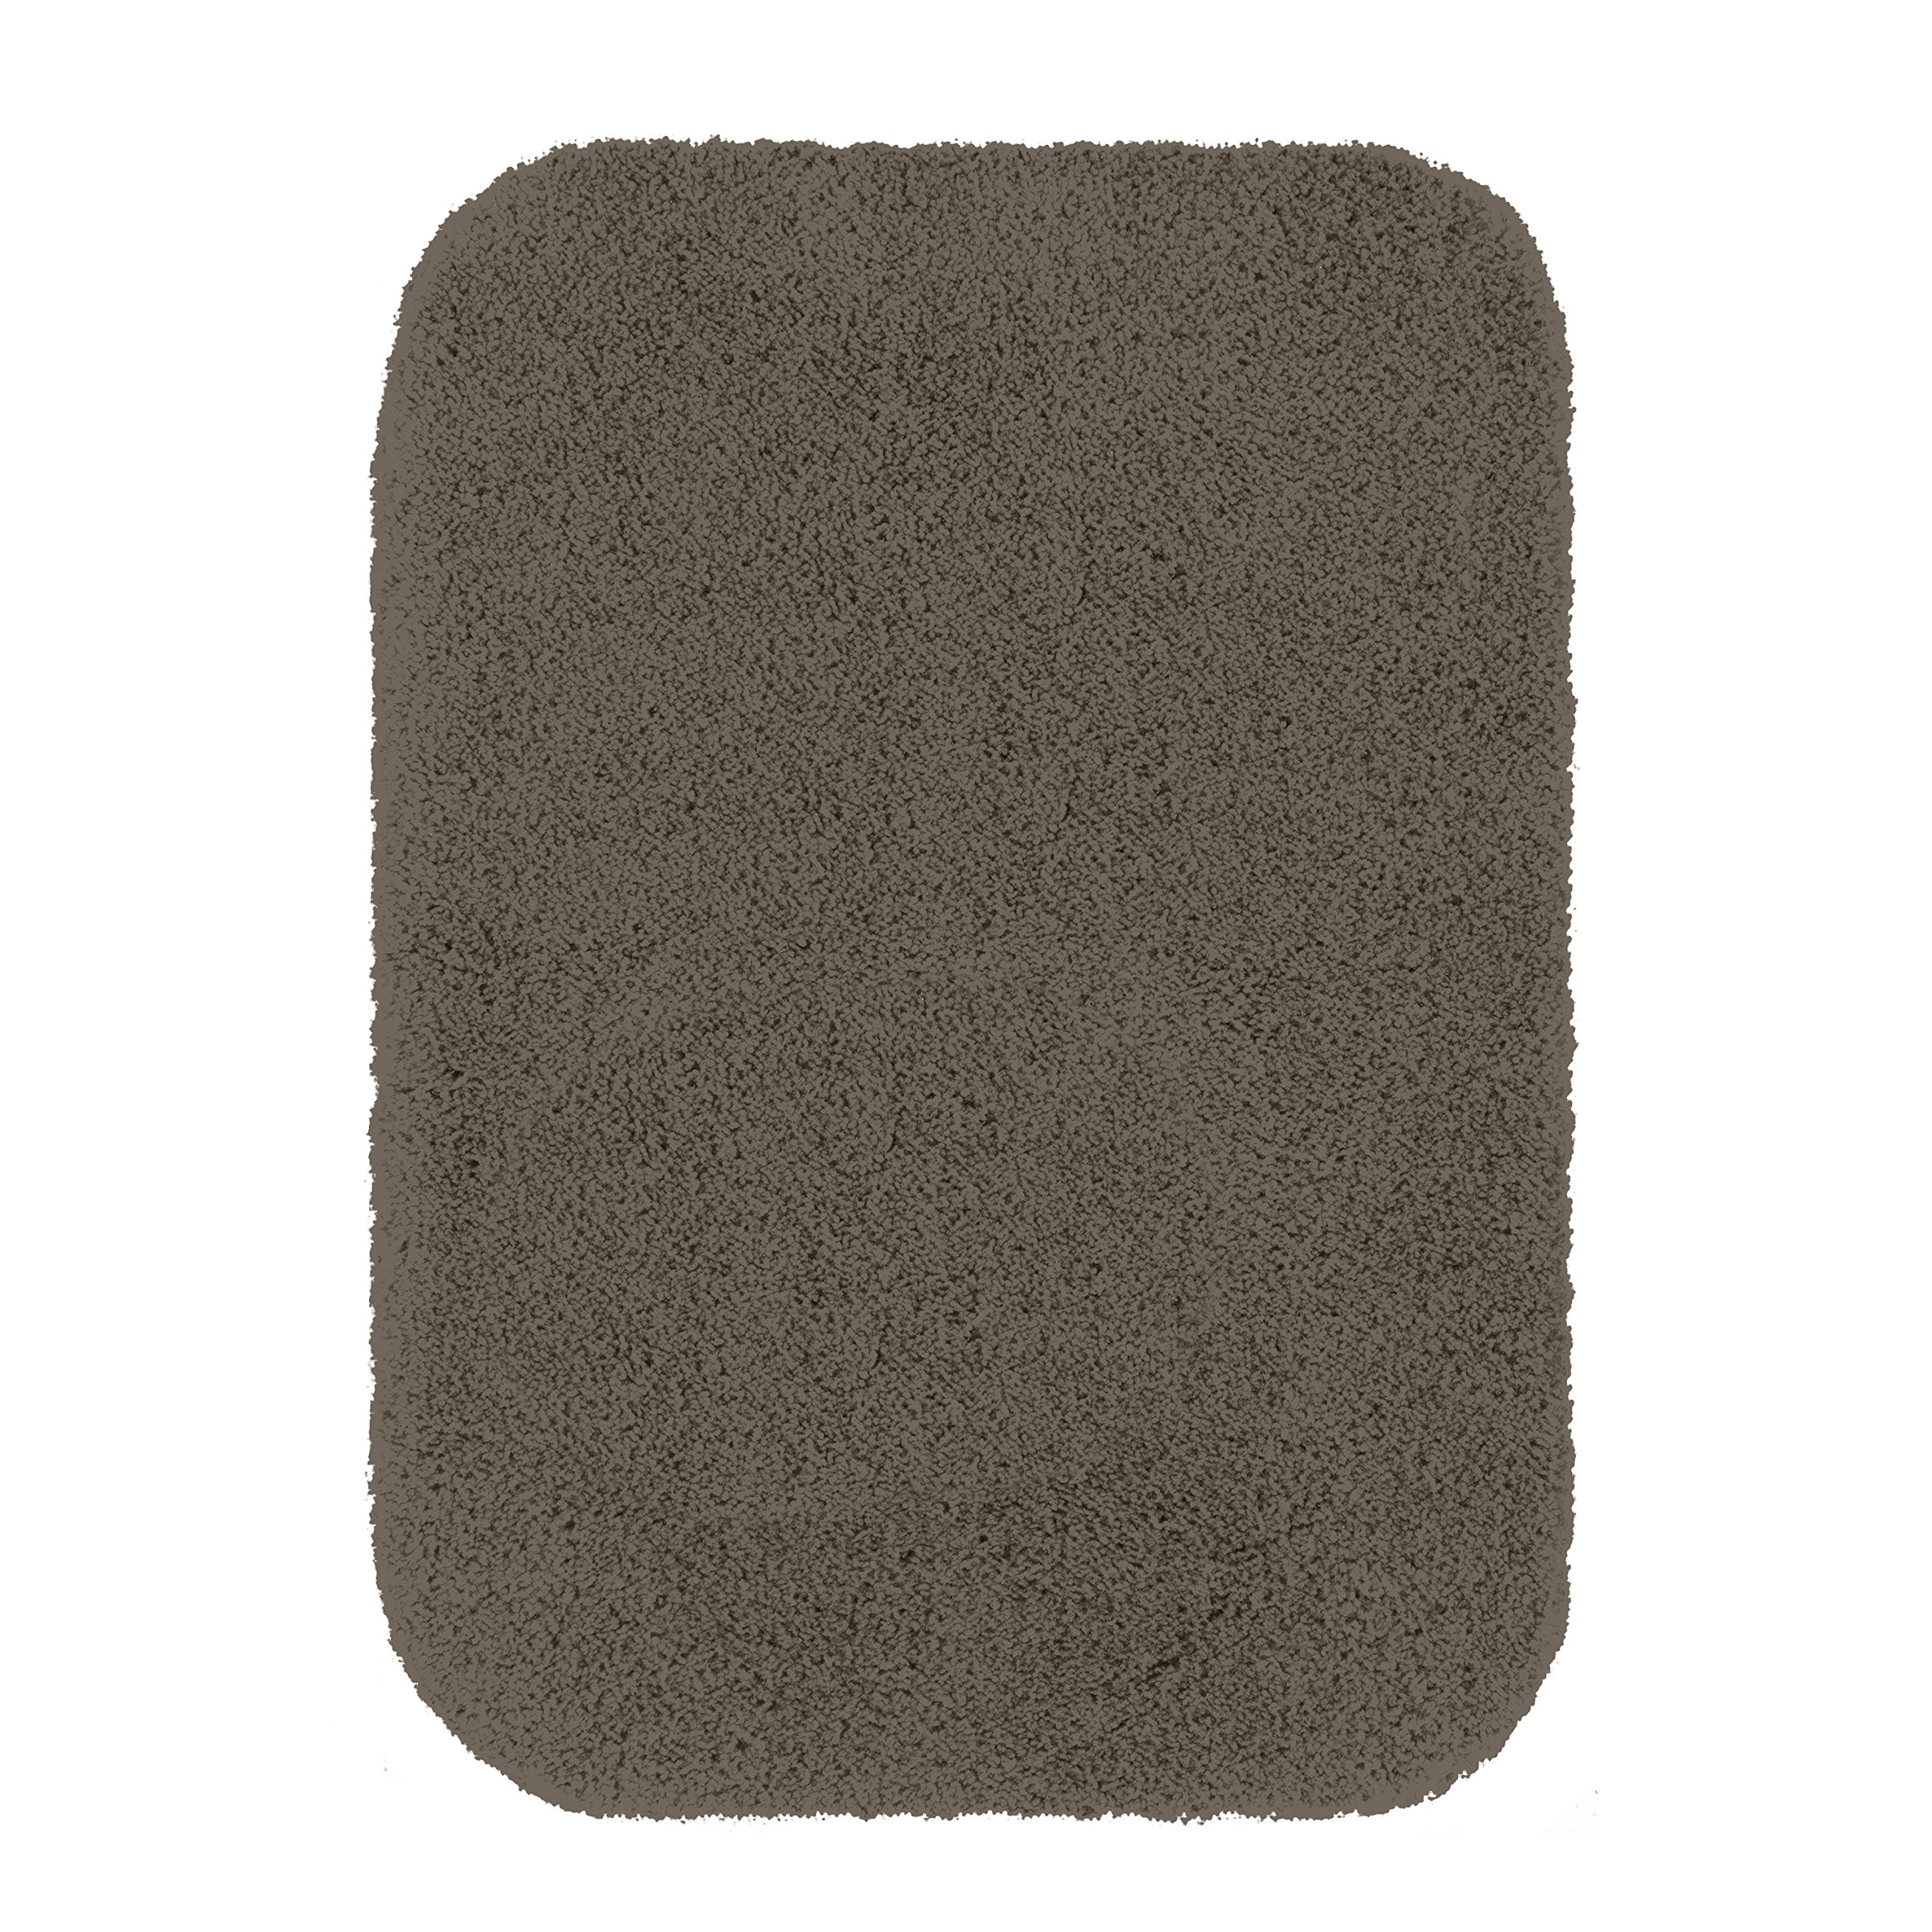 Cheap Cannon Bath Rugs Find Cannon Bath Rugs Deals On Line At